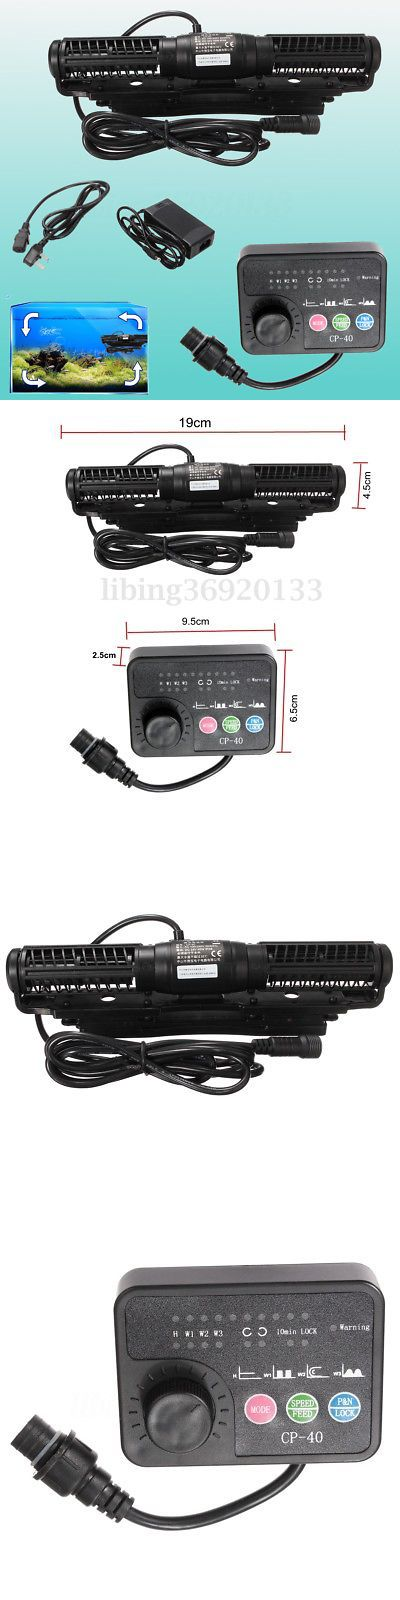 Pumps Water 77641: Jebao Cp-40 Cross Flow Wave Pump Maker Wavemaker Aquarium Fish Reef Coral Us -> BUY IT NOW ONLY: $79.48 on eBay!